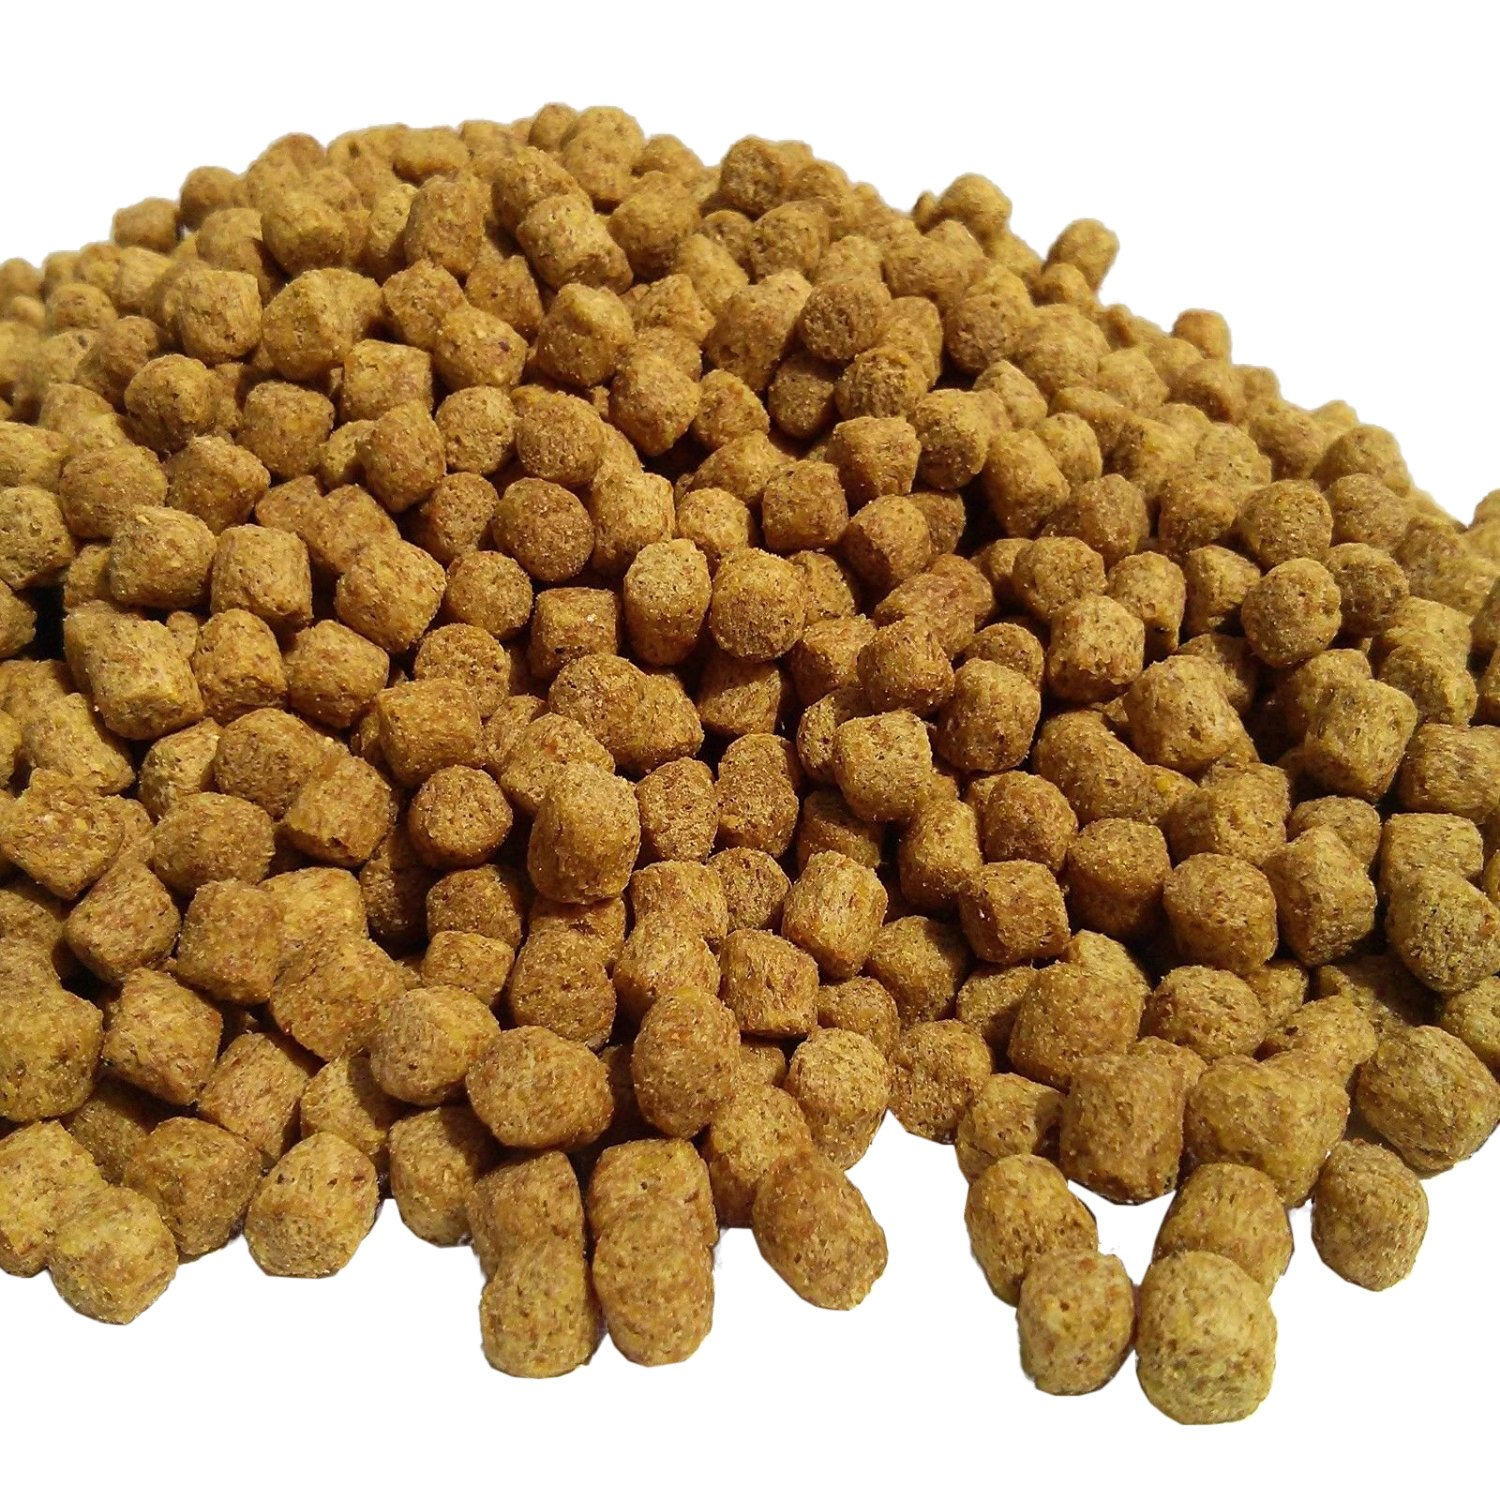 Pellets, AF 7/32''-1/4'' Floating Koi & Pond Fish Food. with Samples of Freeze Dried Krill & Silk Worms Included.51-lbs by Aquatic Foods Inc.